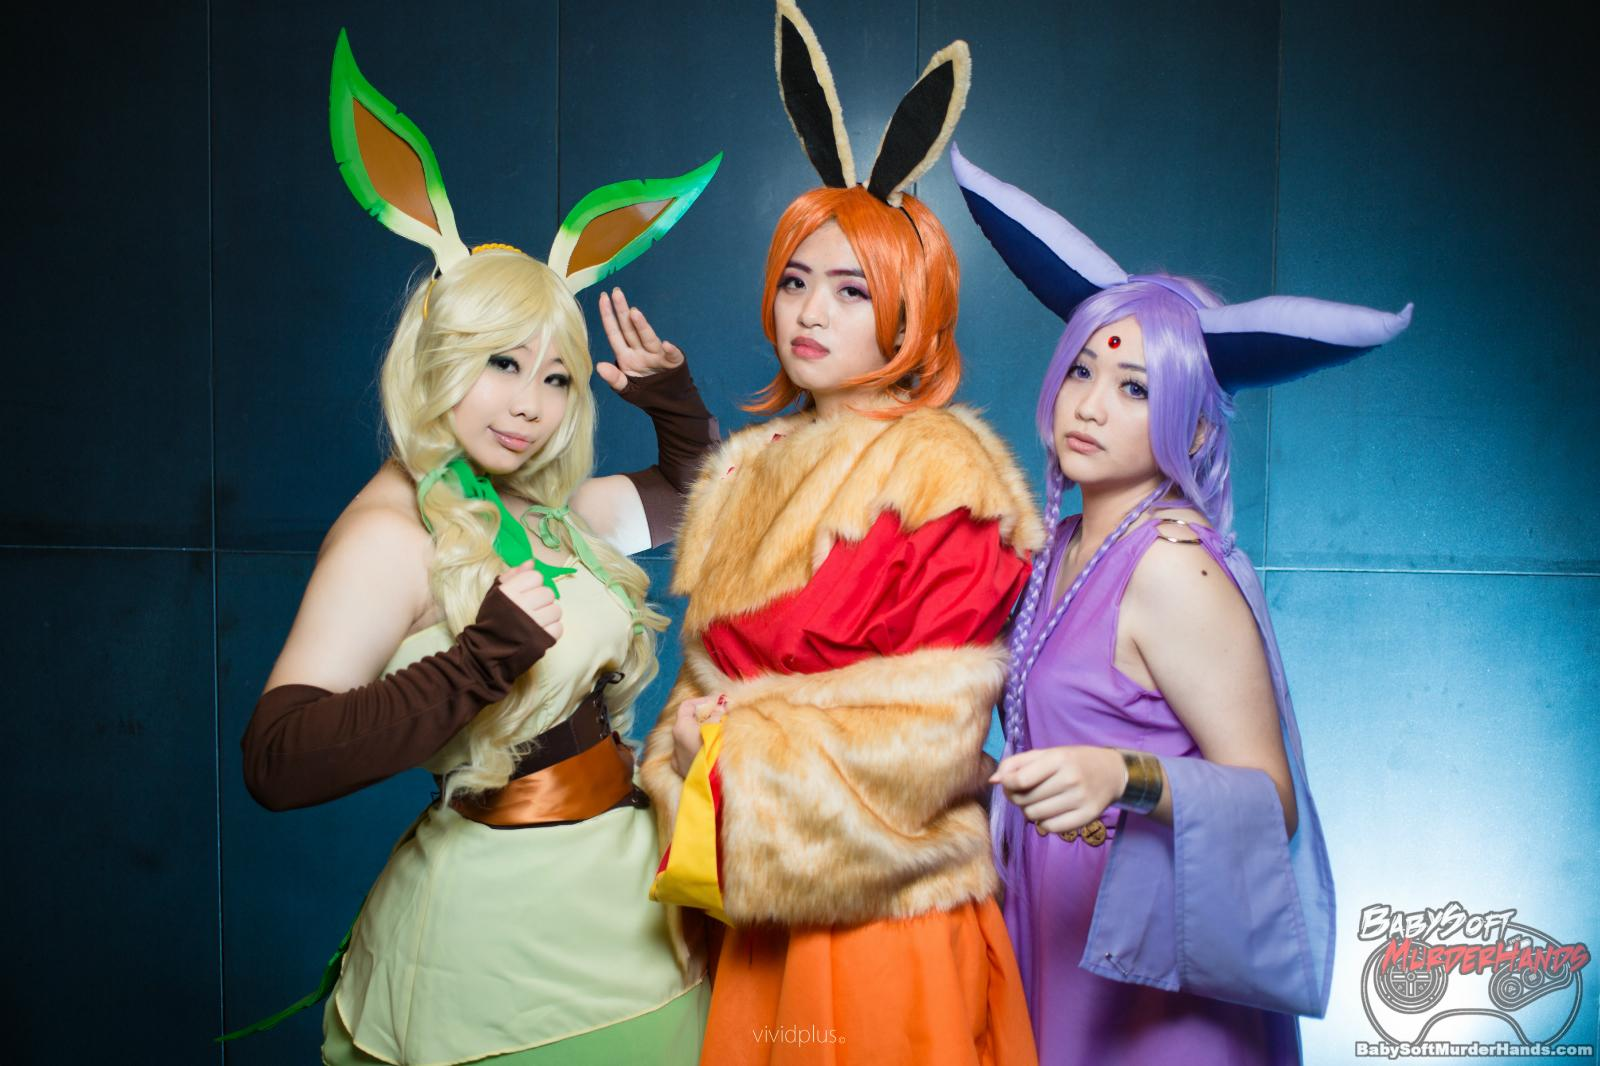 Flafeon: Cosmik General Espeon: Nana Kitsune Leafeon: Zakito Photo by: Vivid+ Photography (Alan Wong)-3000 cosplay gijinka pokemon